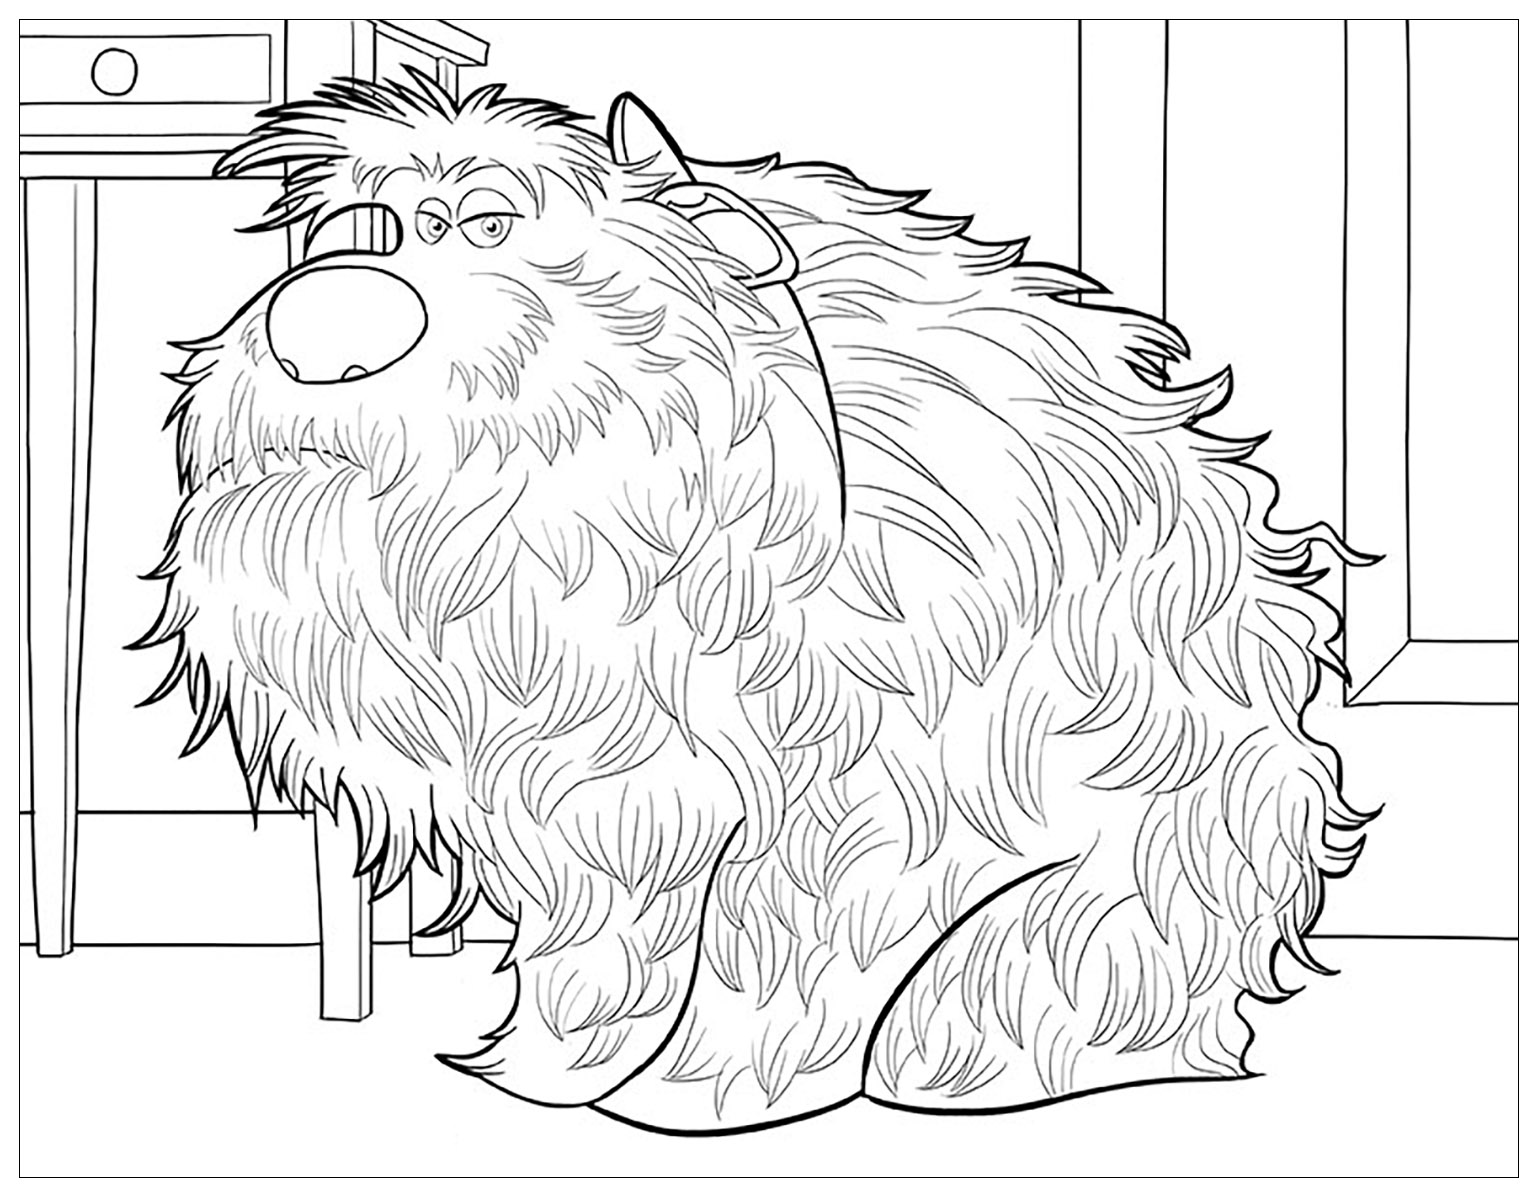 Incredible The Secret Life of Pets coloring page to print and color for free